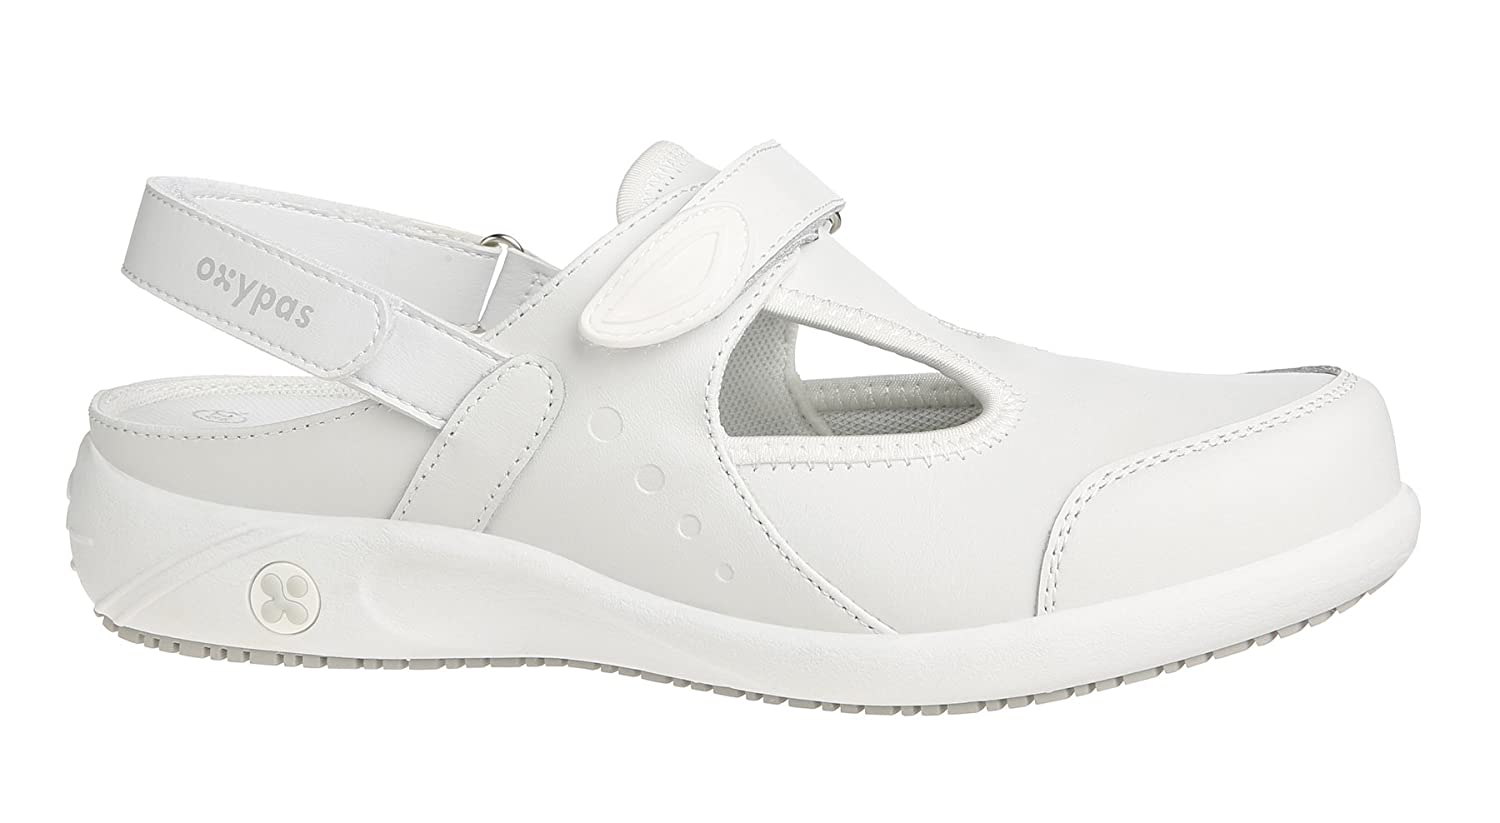 Oxypas Move Carin Slip-resistant, Antistatic Nursing Shoes, White (Wht), 7 UK (EU: 41)Bianco (White (Wht)